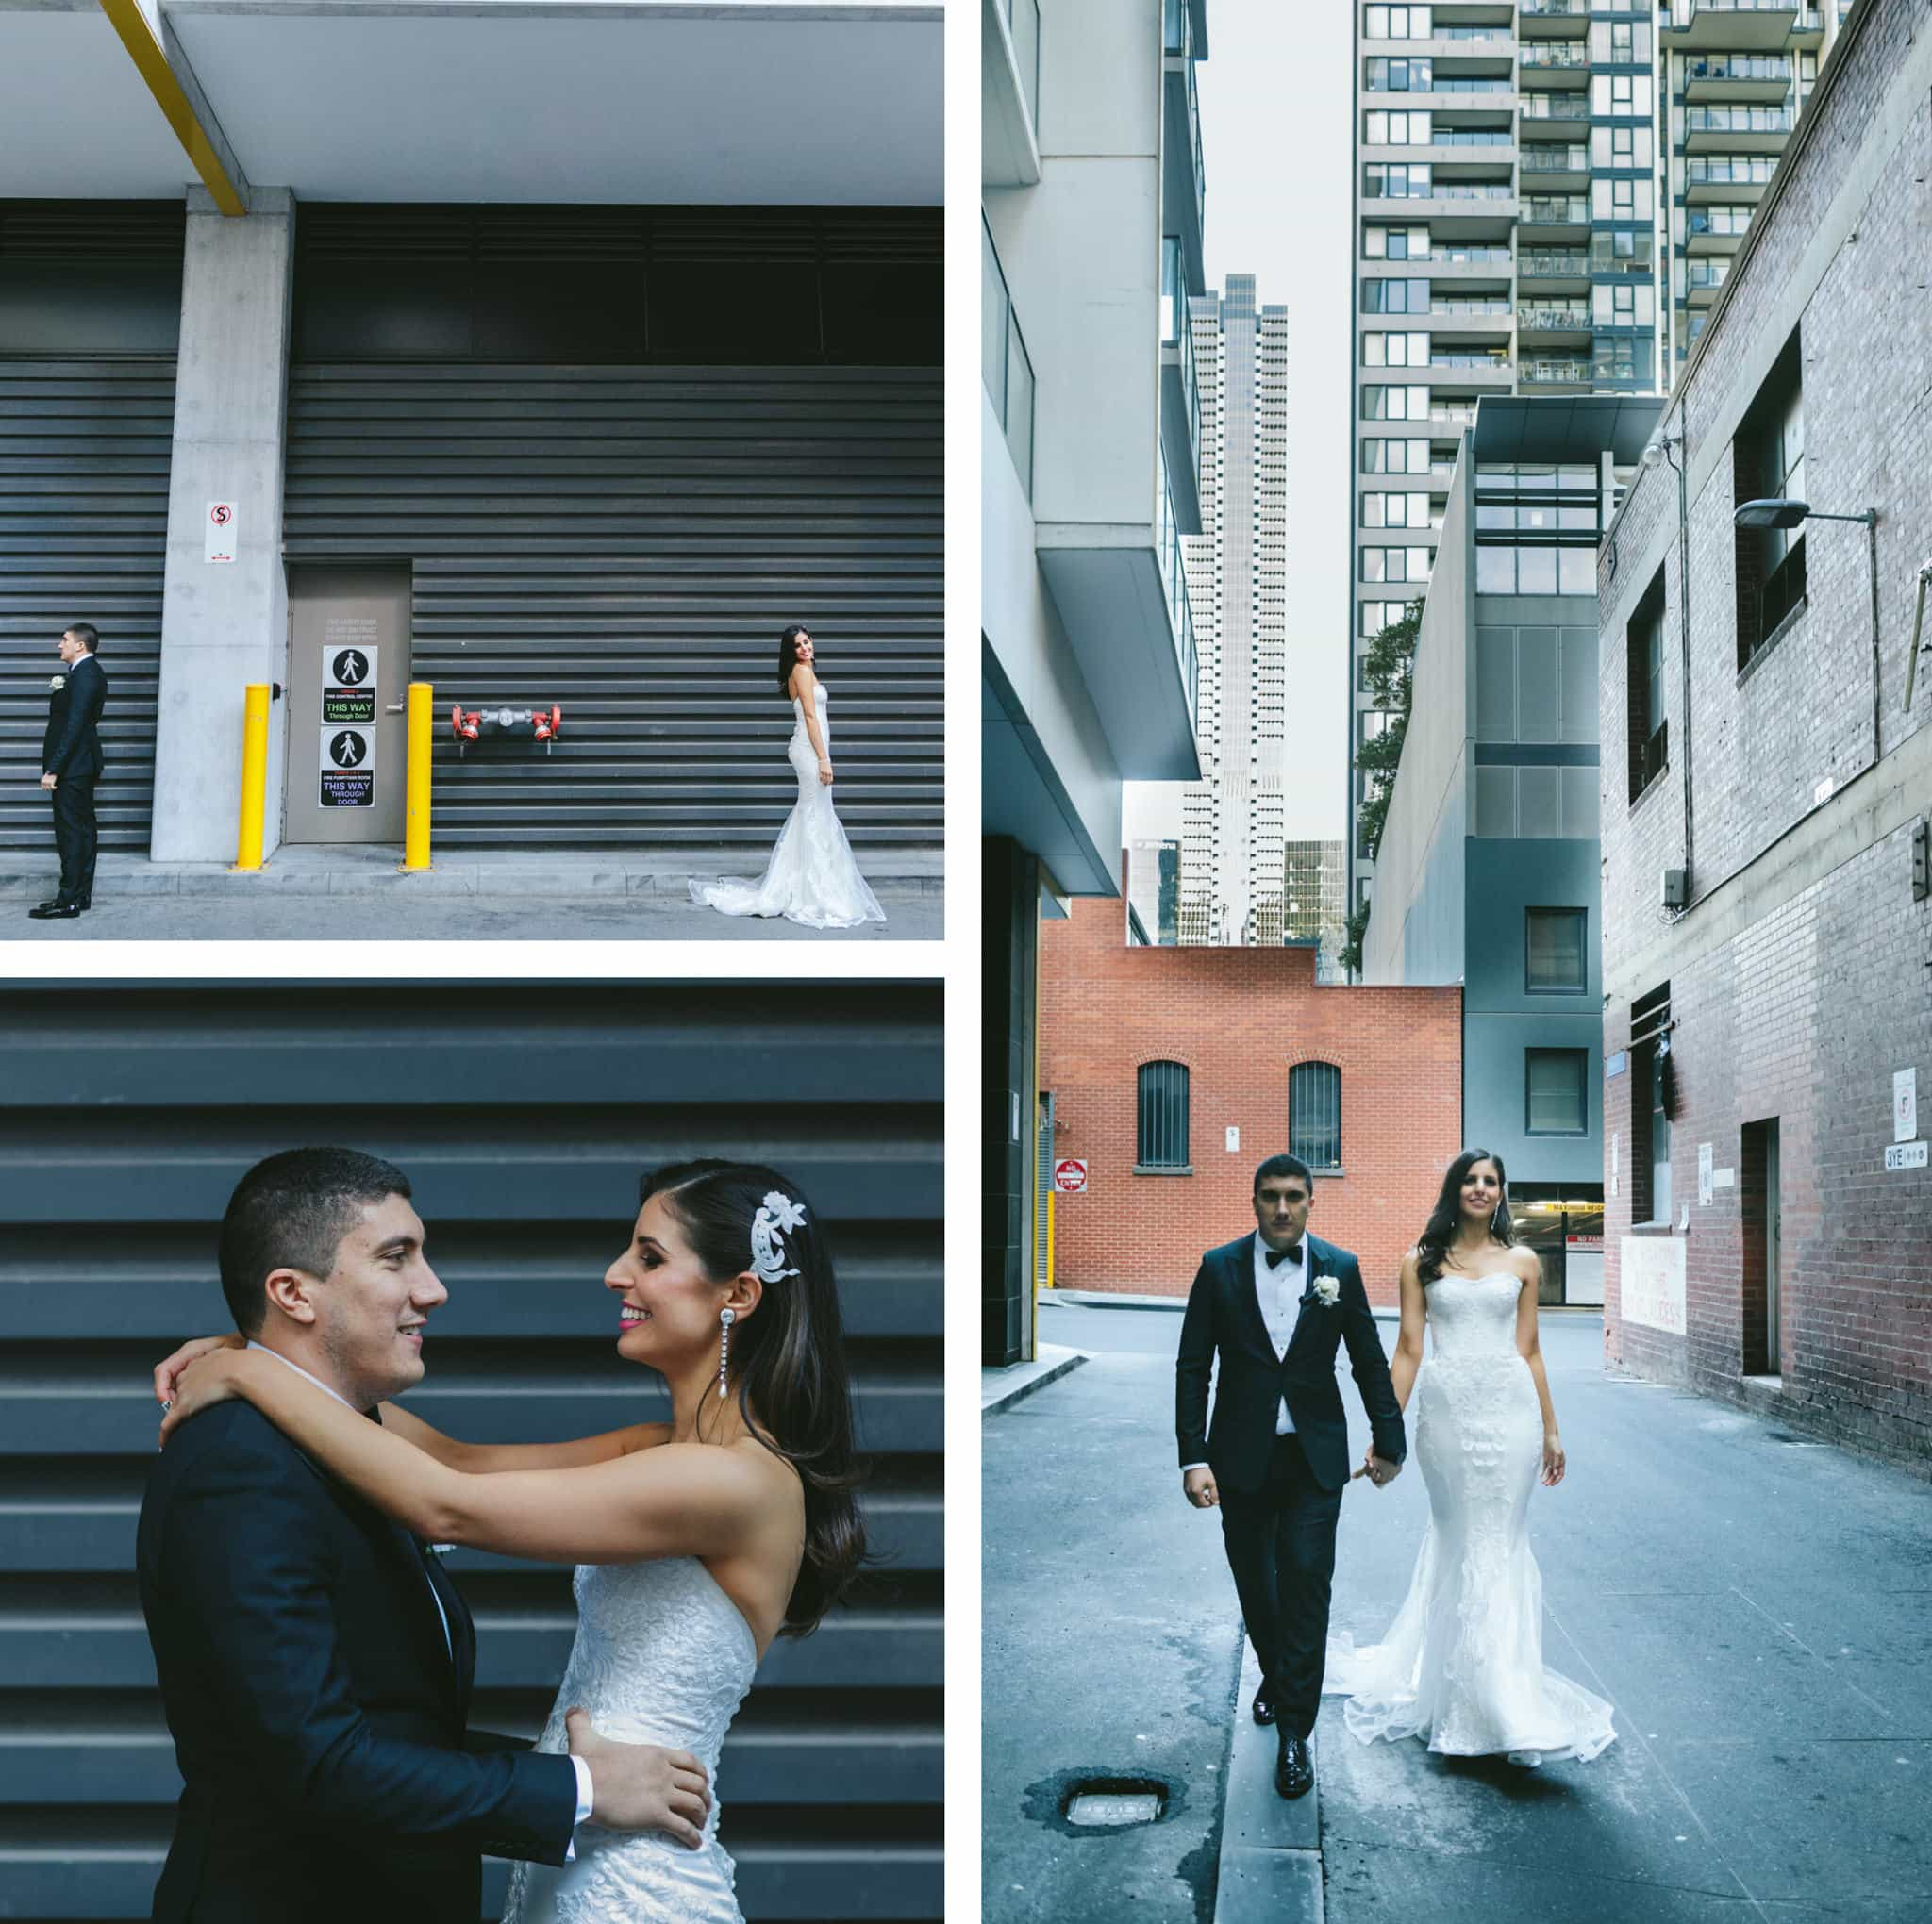 city wedding photography in melbourne - best stylish photography - non posed